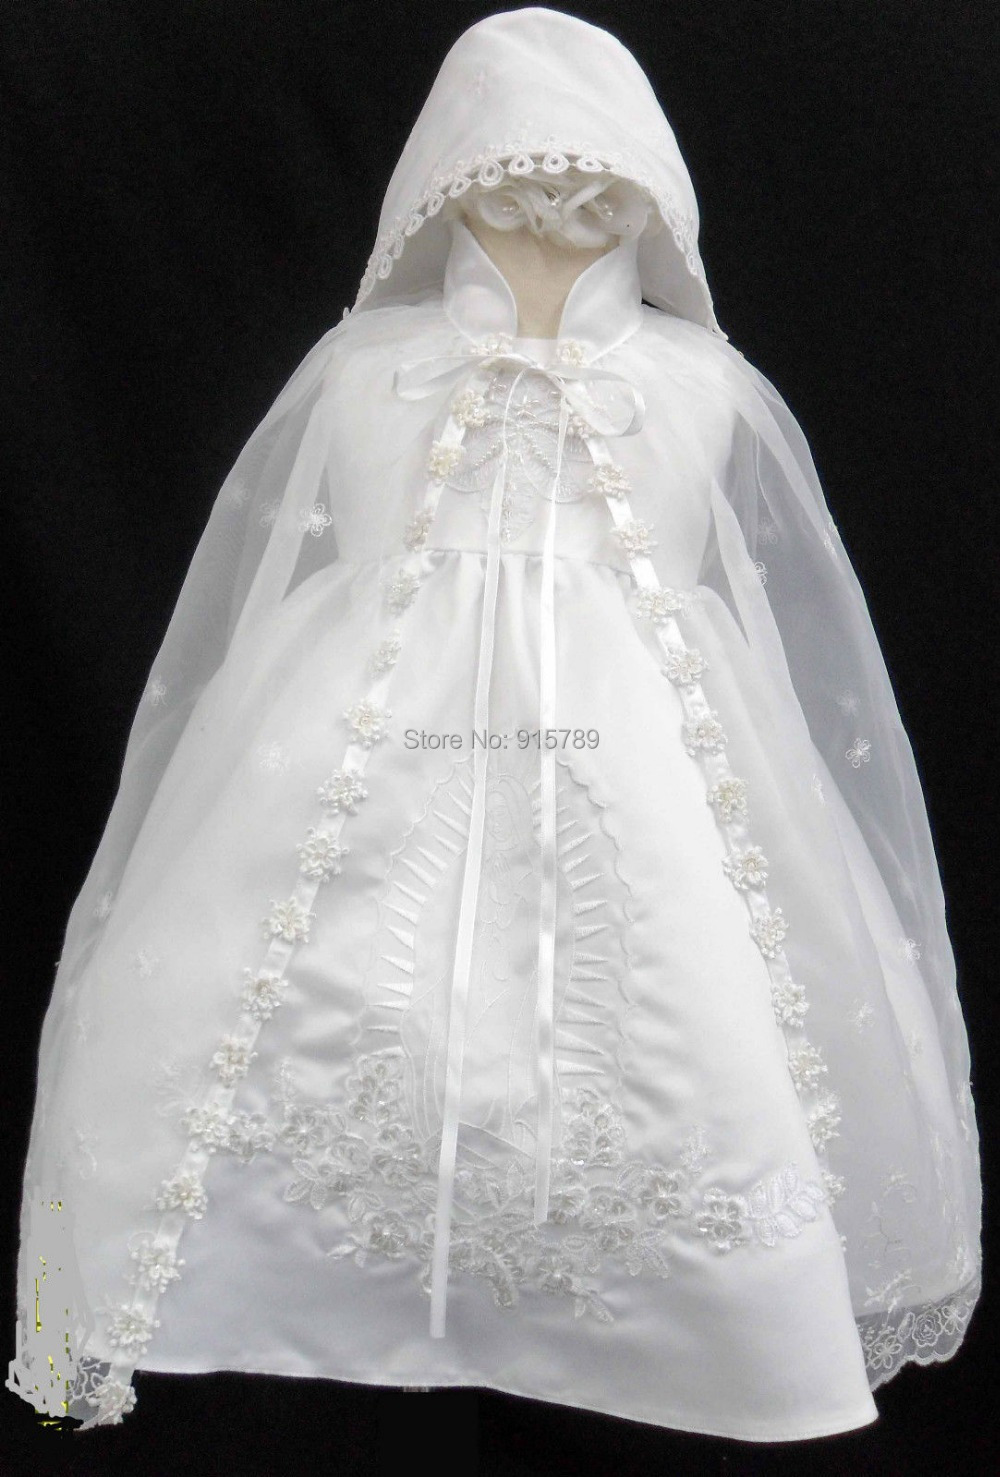 Infant Baby Girl Christening Baptism Dress Gown White